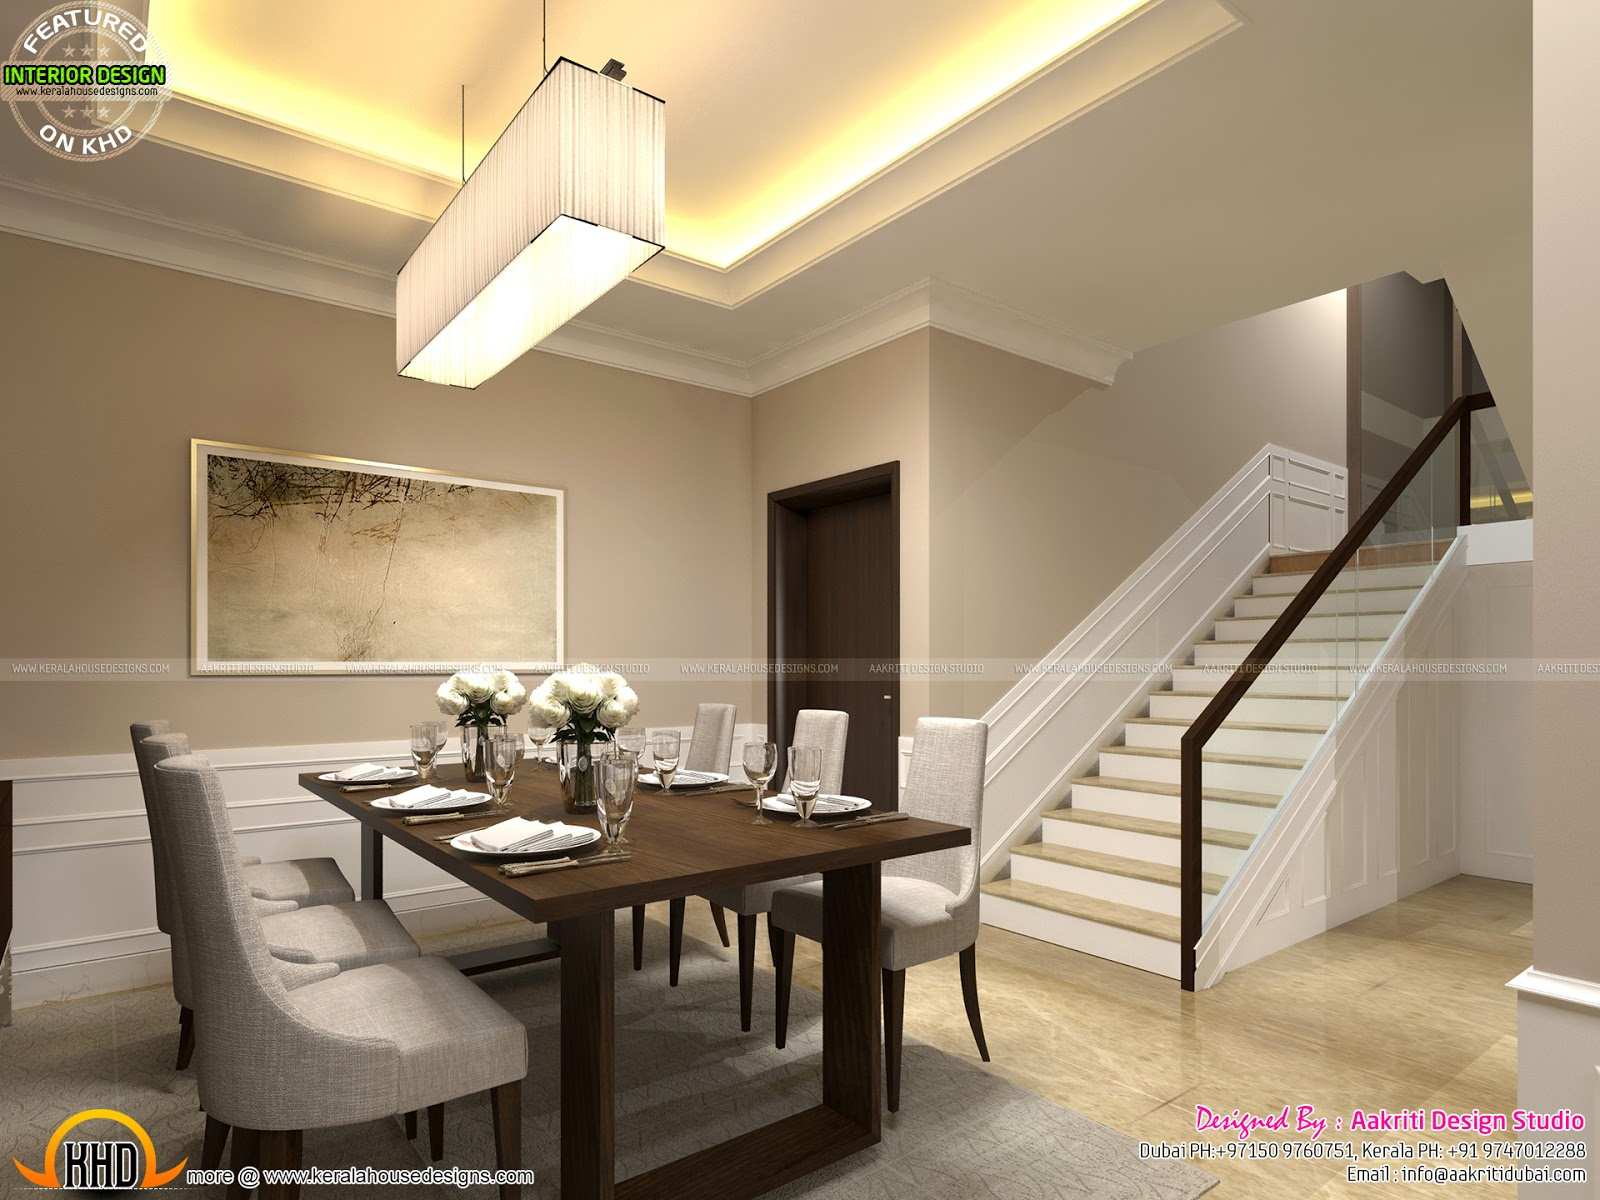 Classic style interior design for living room, stair area ...